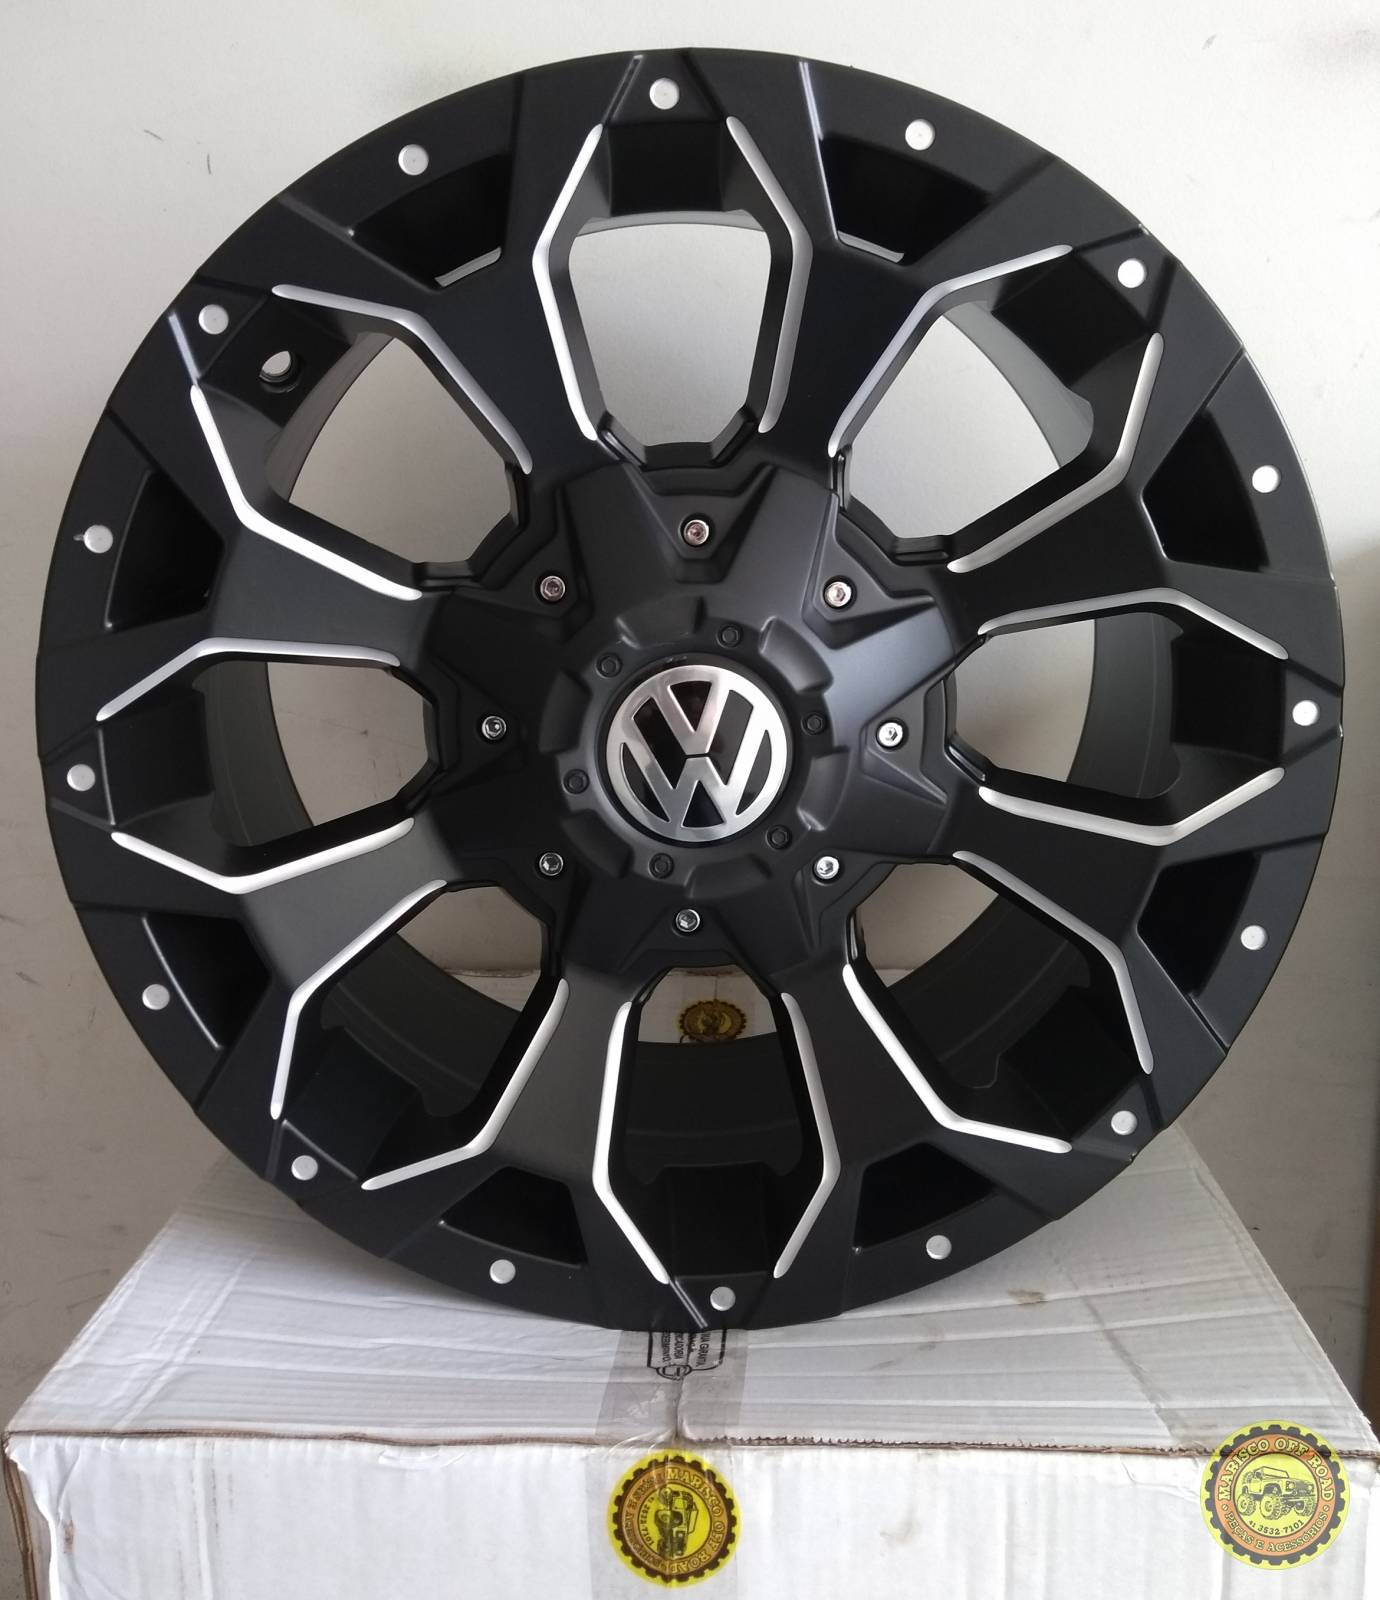 Roda 17x8 MK12, furação 5x120, off set +20 - AMAROK - Marisco Off Road